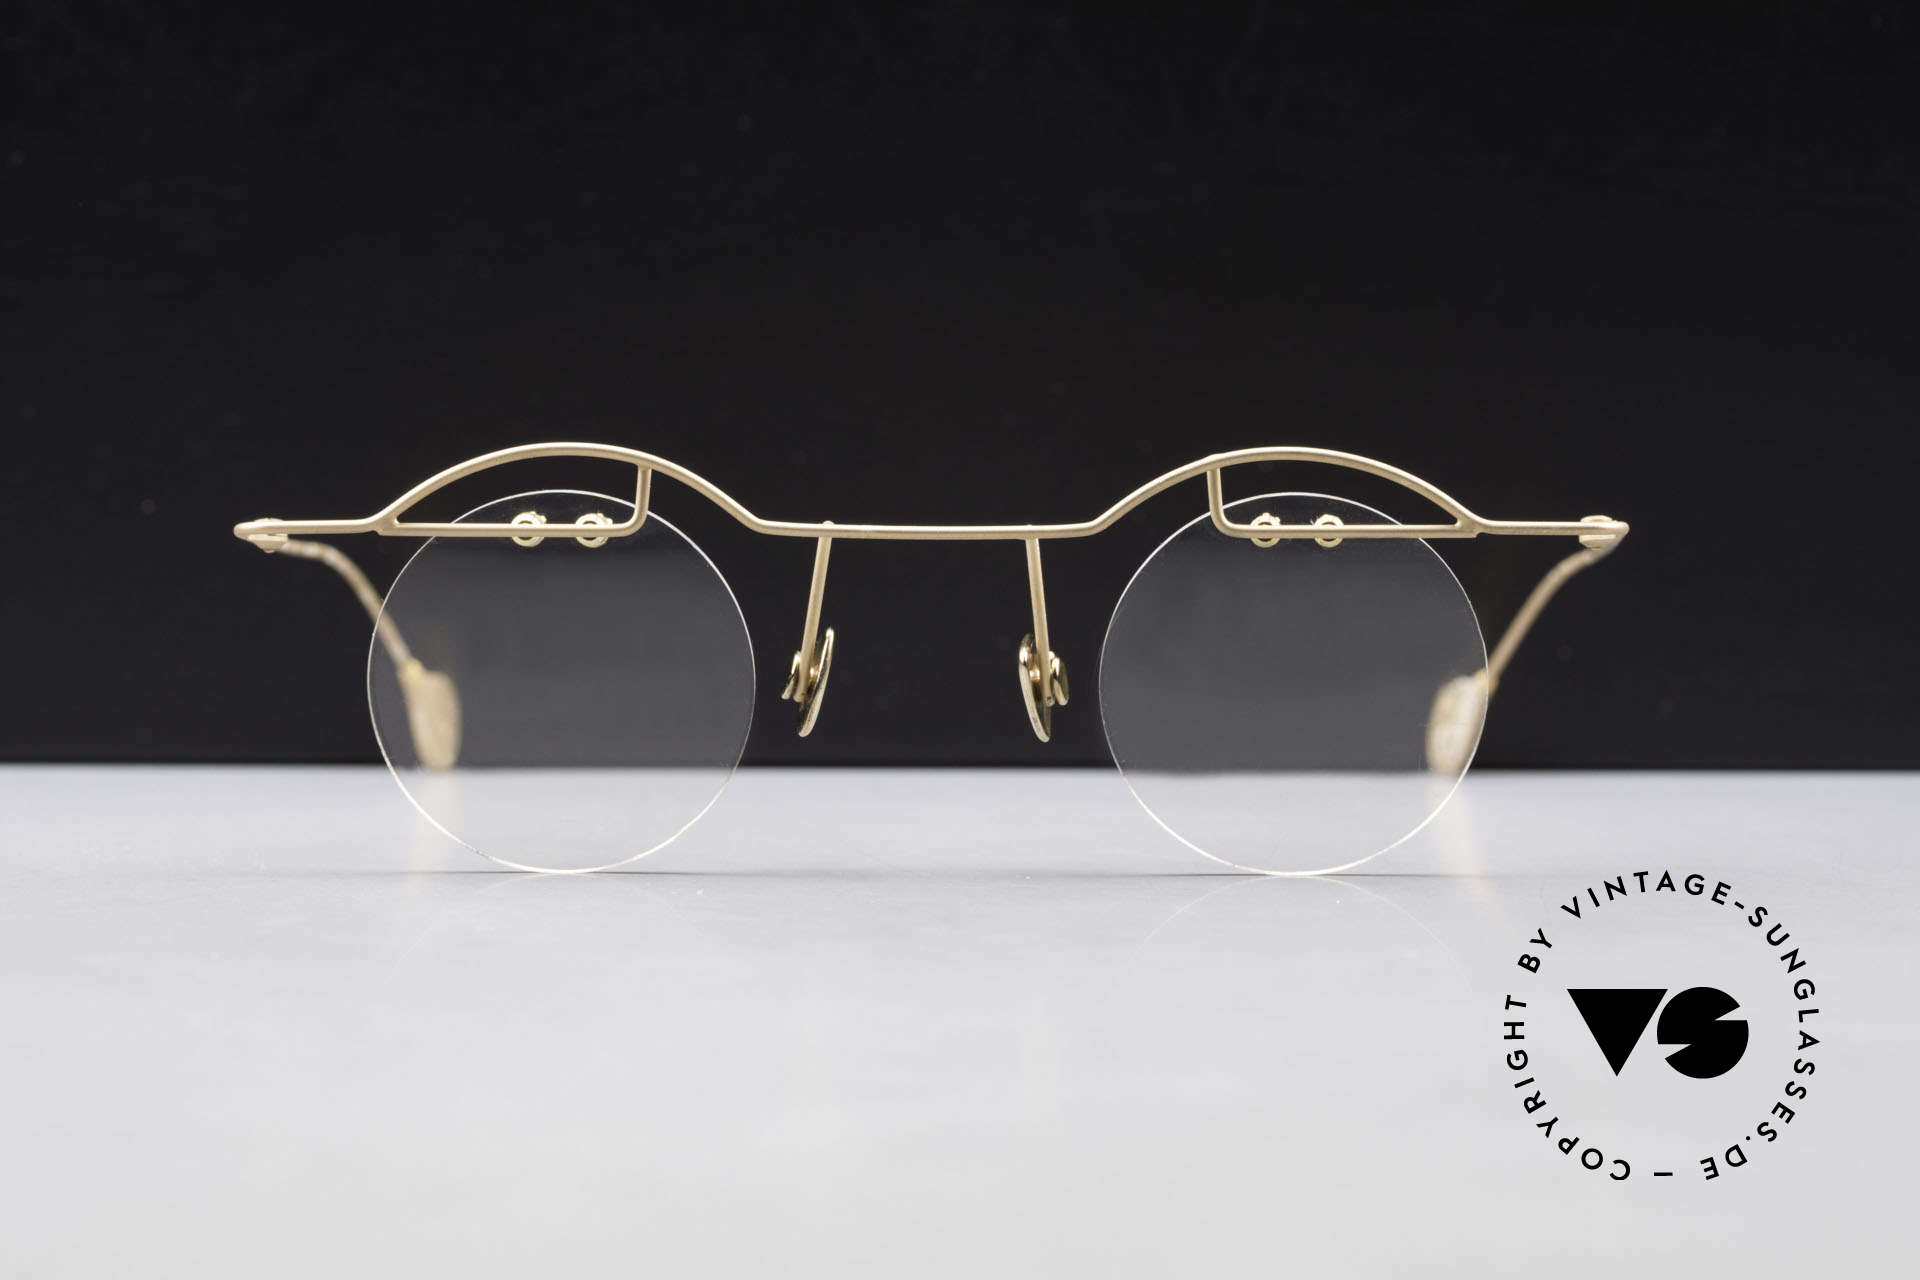 Paul Chiol 02 Bauhaus Eyeglasses Rimless, exclusively top-notch frame components; high-end, Made for Men and Women